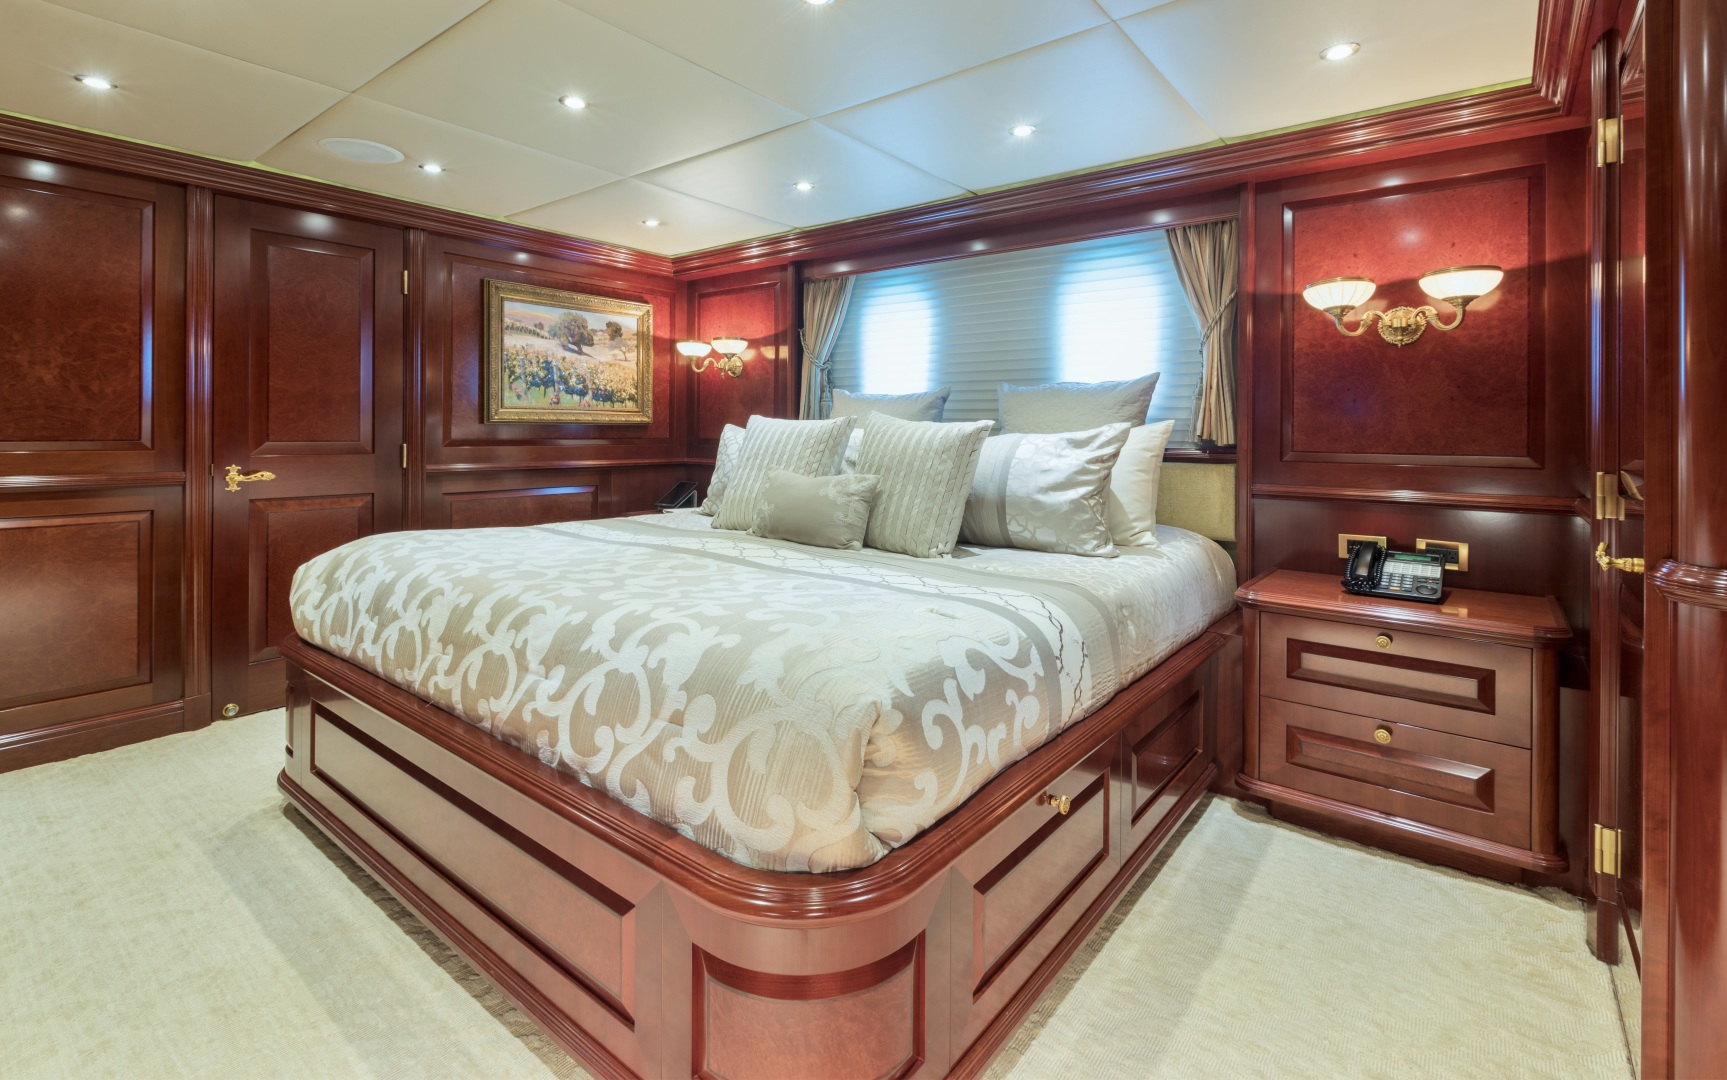 Trinity Yachts-164 Tri-deck Motor Yacht 2008-Amarula Sun Fort Lauderdale-Florida-United States-Guest Suite Aft Starboard-1513912 | Thumbnail